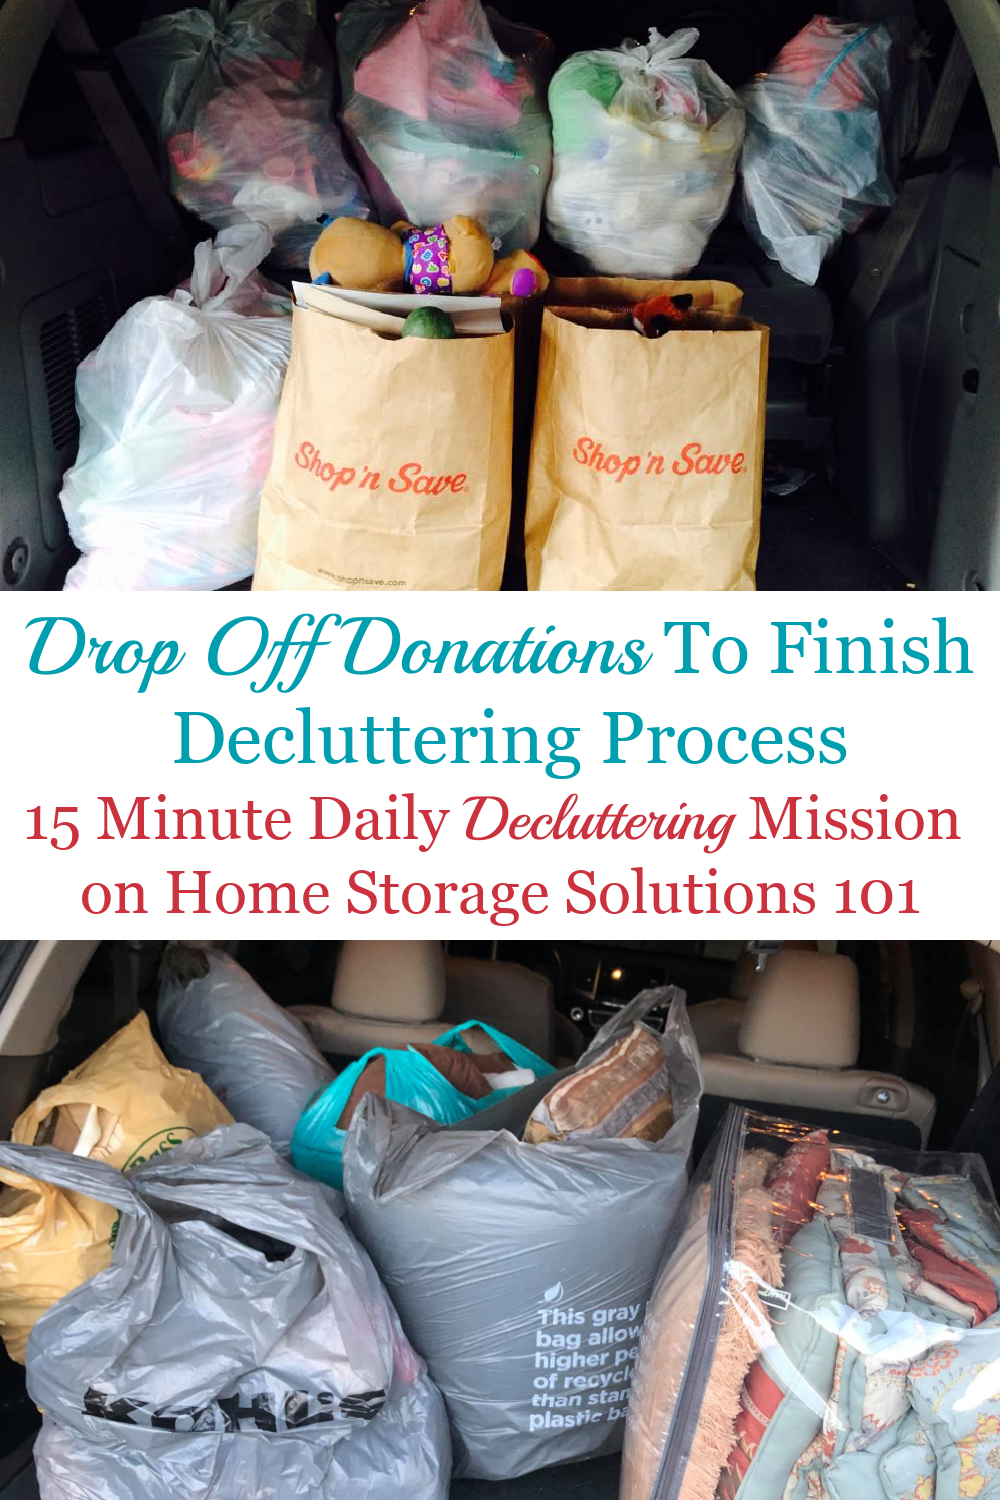 In this Declutter 365 mission I want you to drop off donations to a charity or donation center, to finish the task of decluttering items around your home that you've identified as clutter, and that you wish to give away to others {on Home Storage Solutions 101} #Declutter365 #DropOffDonations #DonateClutter